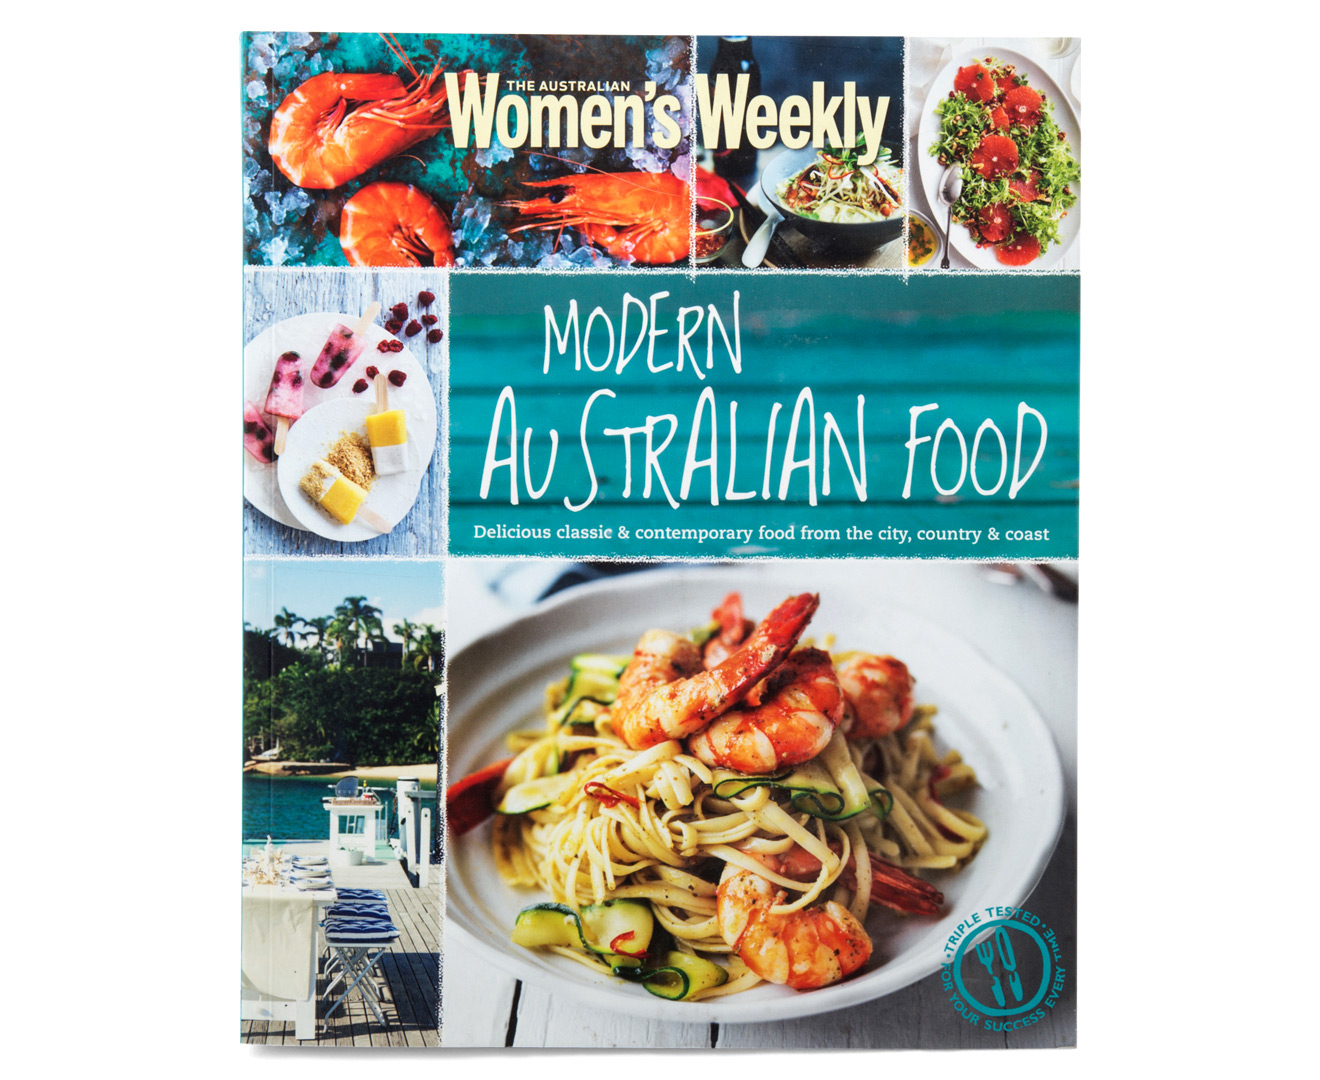 The australian women 39 s weekly modern australian food book for Australian modern cuisine